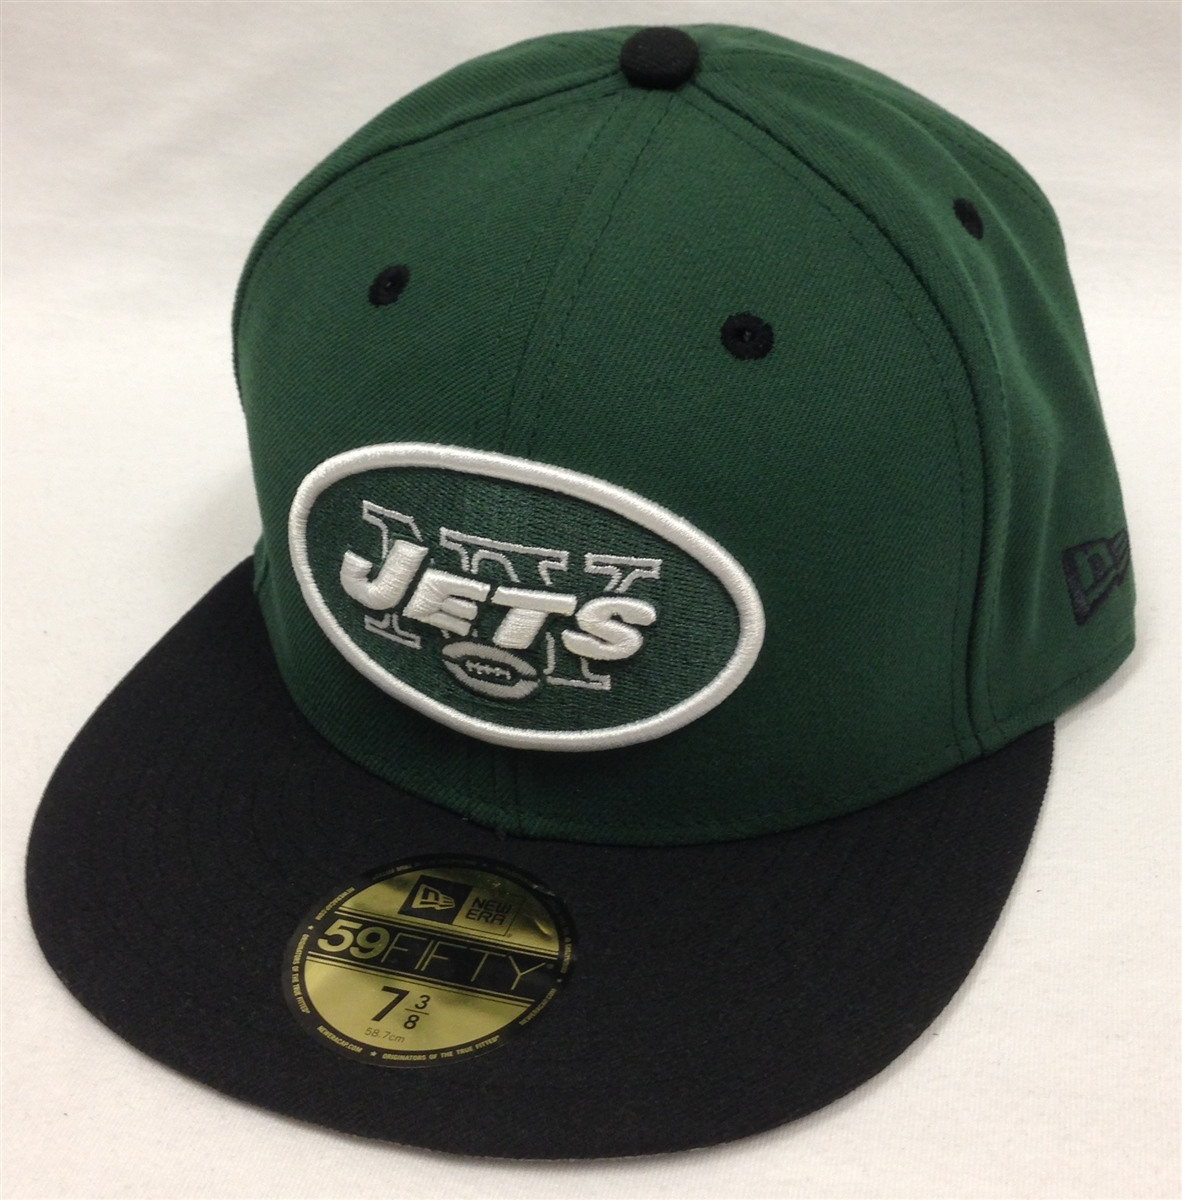 New Era 59Fifty 2Tone New York Jets Green   Black Fitted Cap 8c466569ee18